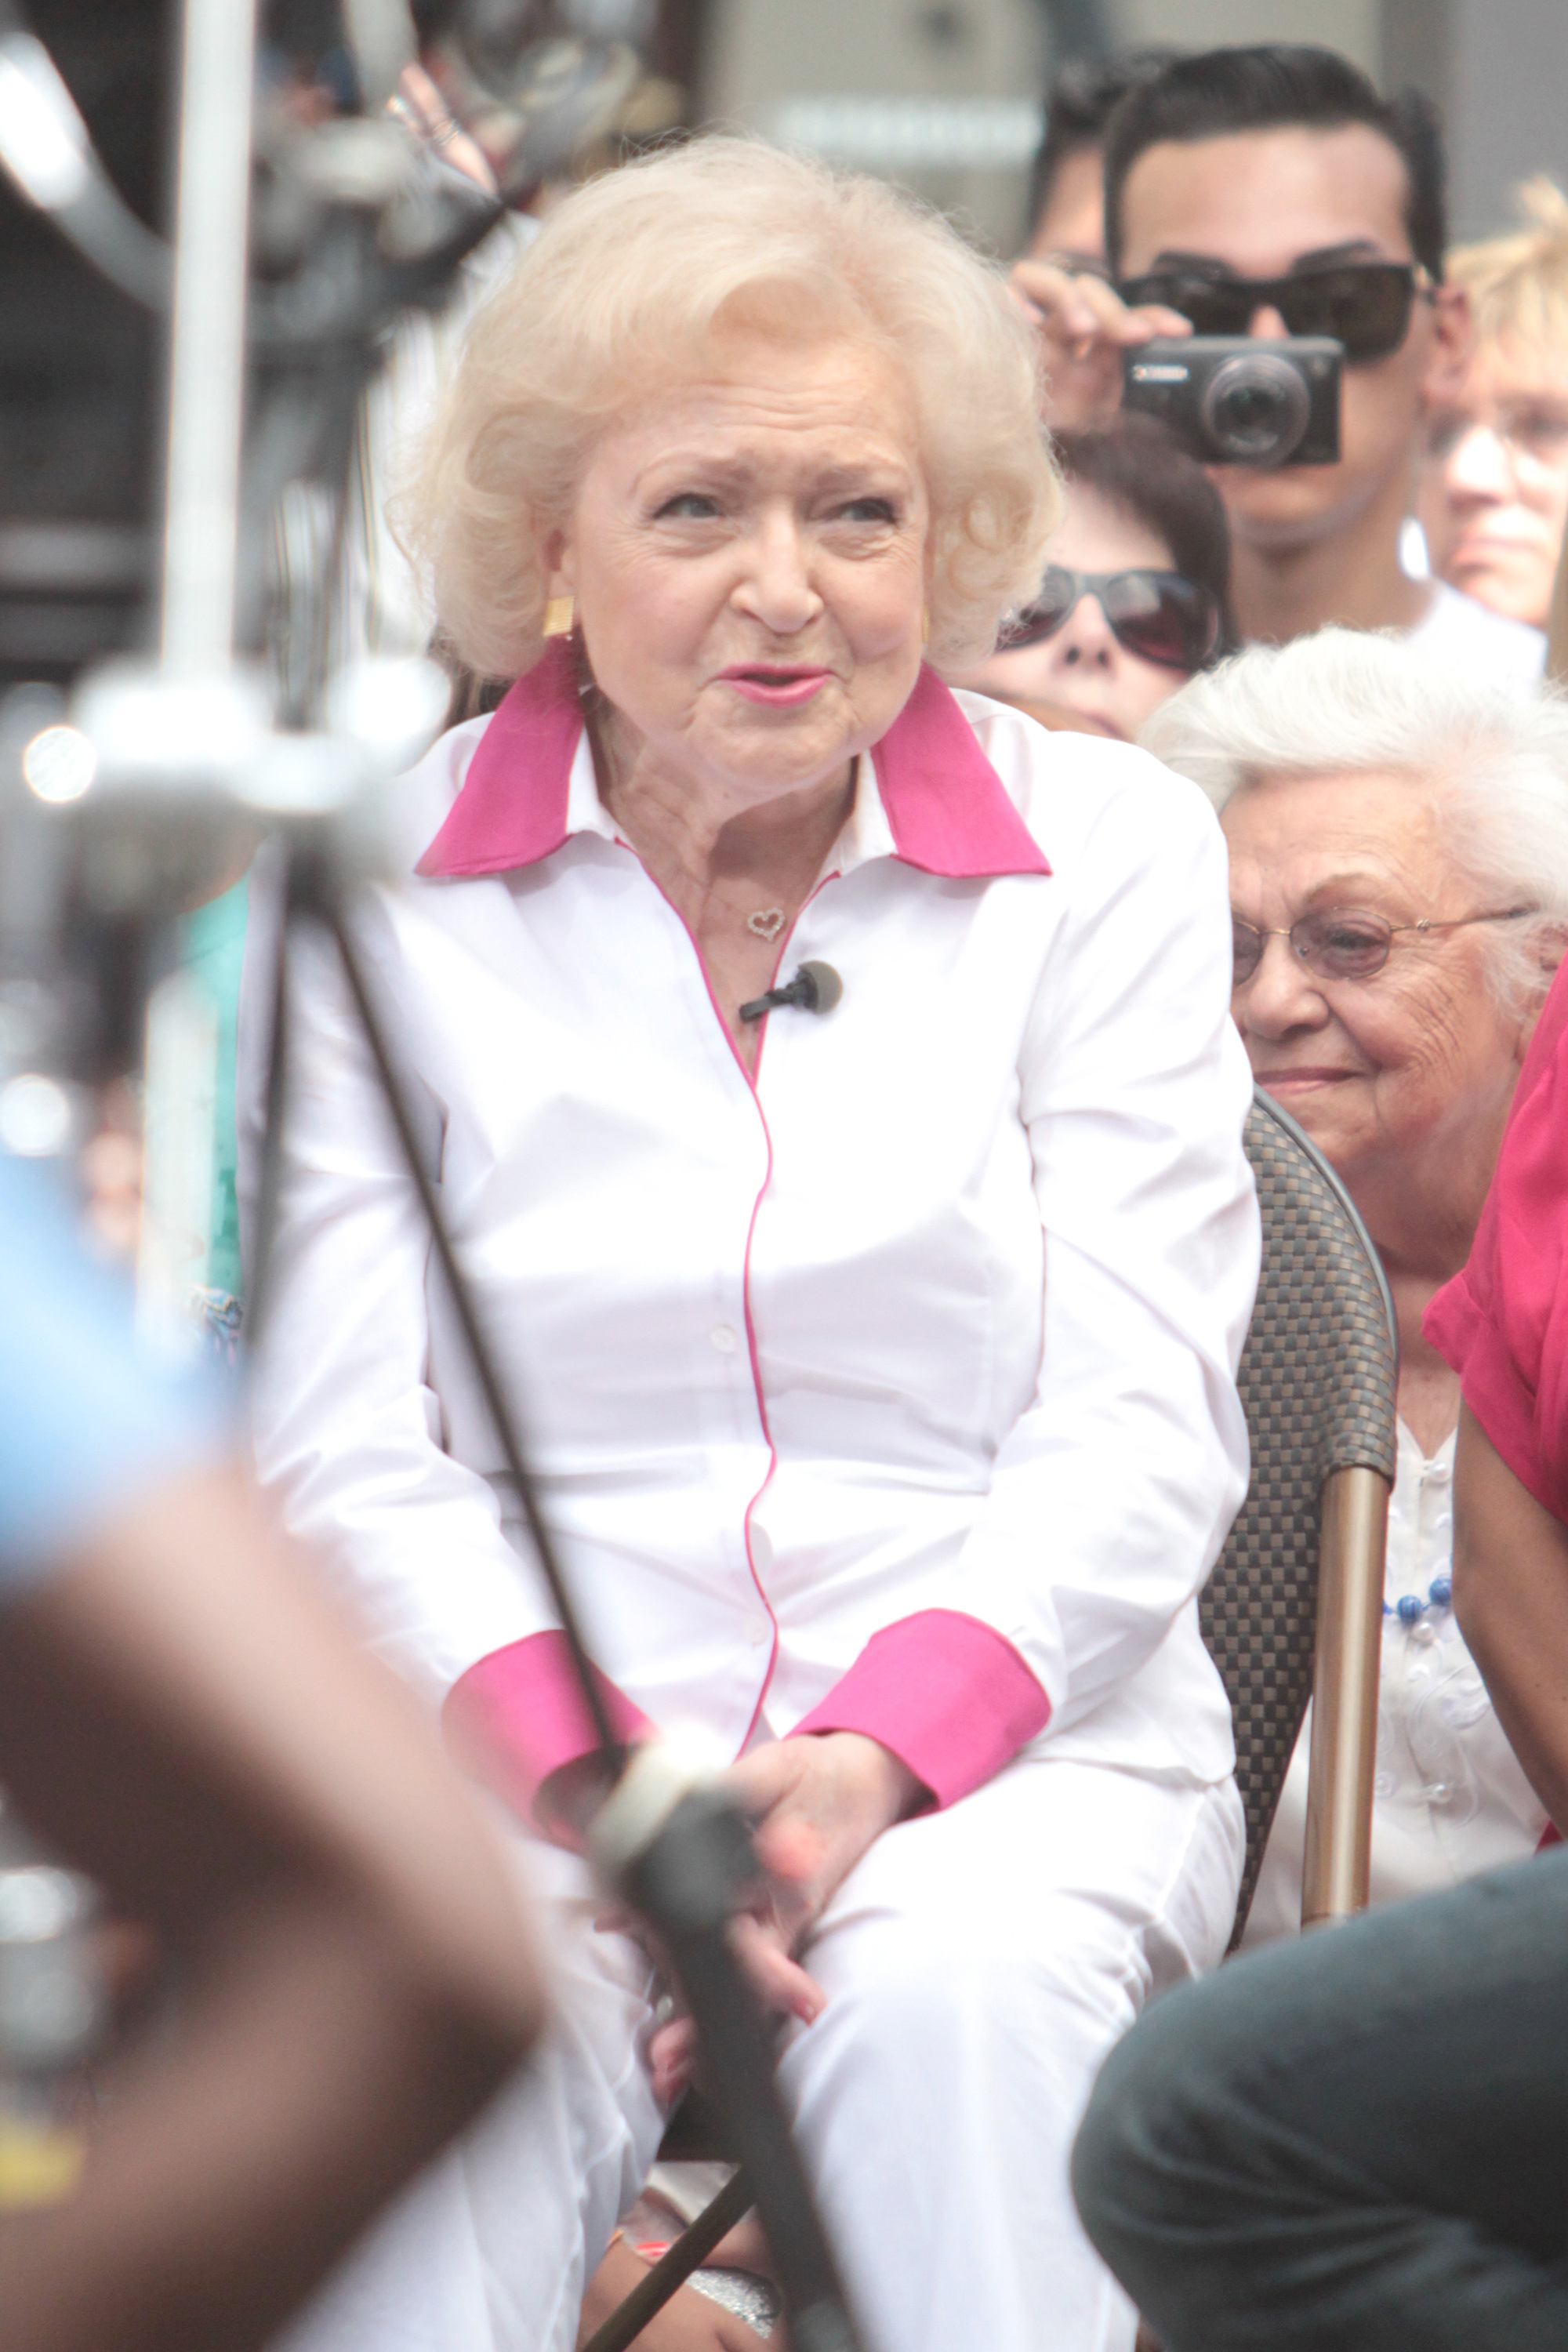 Betty White on Extra  at The Grove                  Los Angeles, California - 21.08.12                                    Featuring: Betty White on Extra  at The Grove                  When: 21 Aug 2012                  Credit: WENN